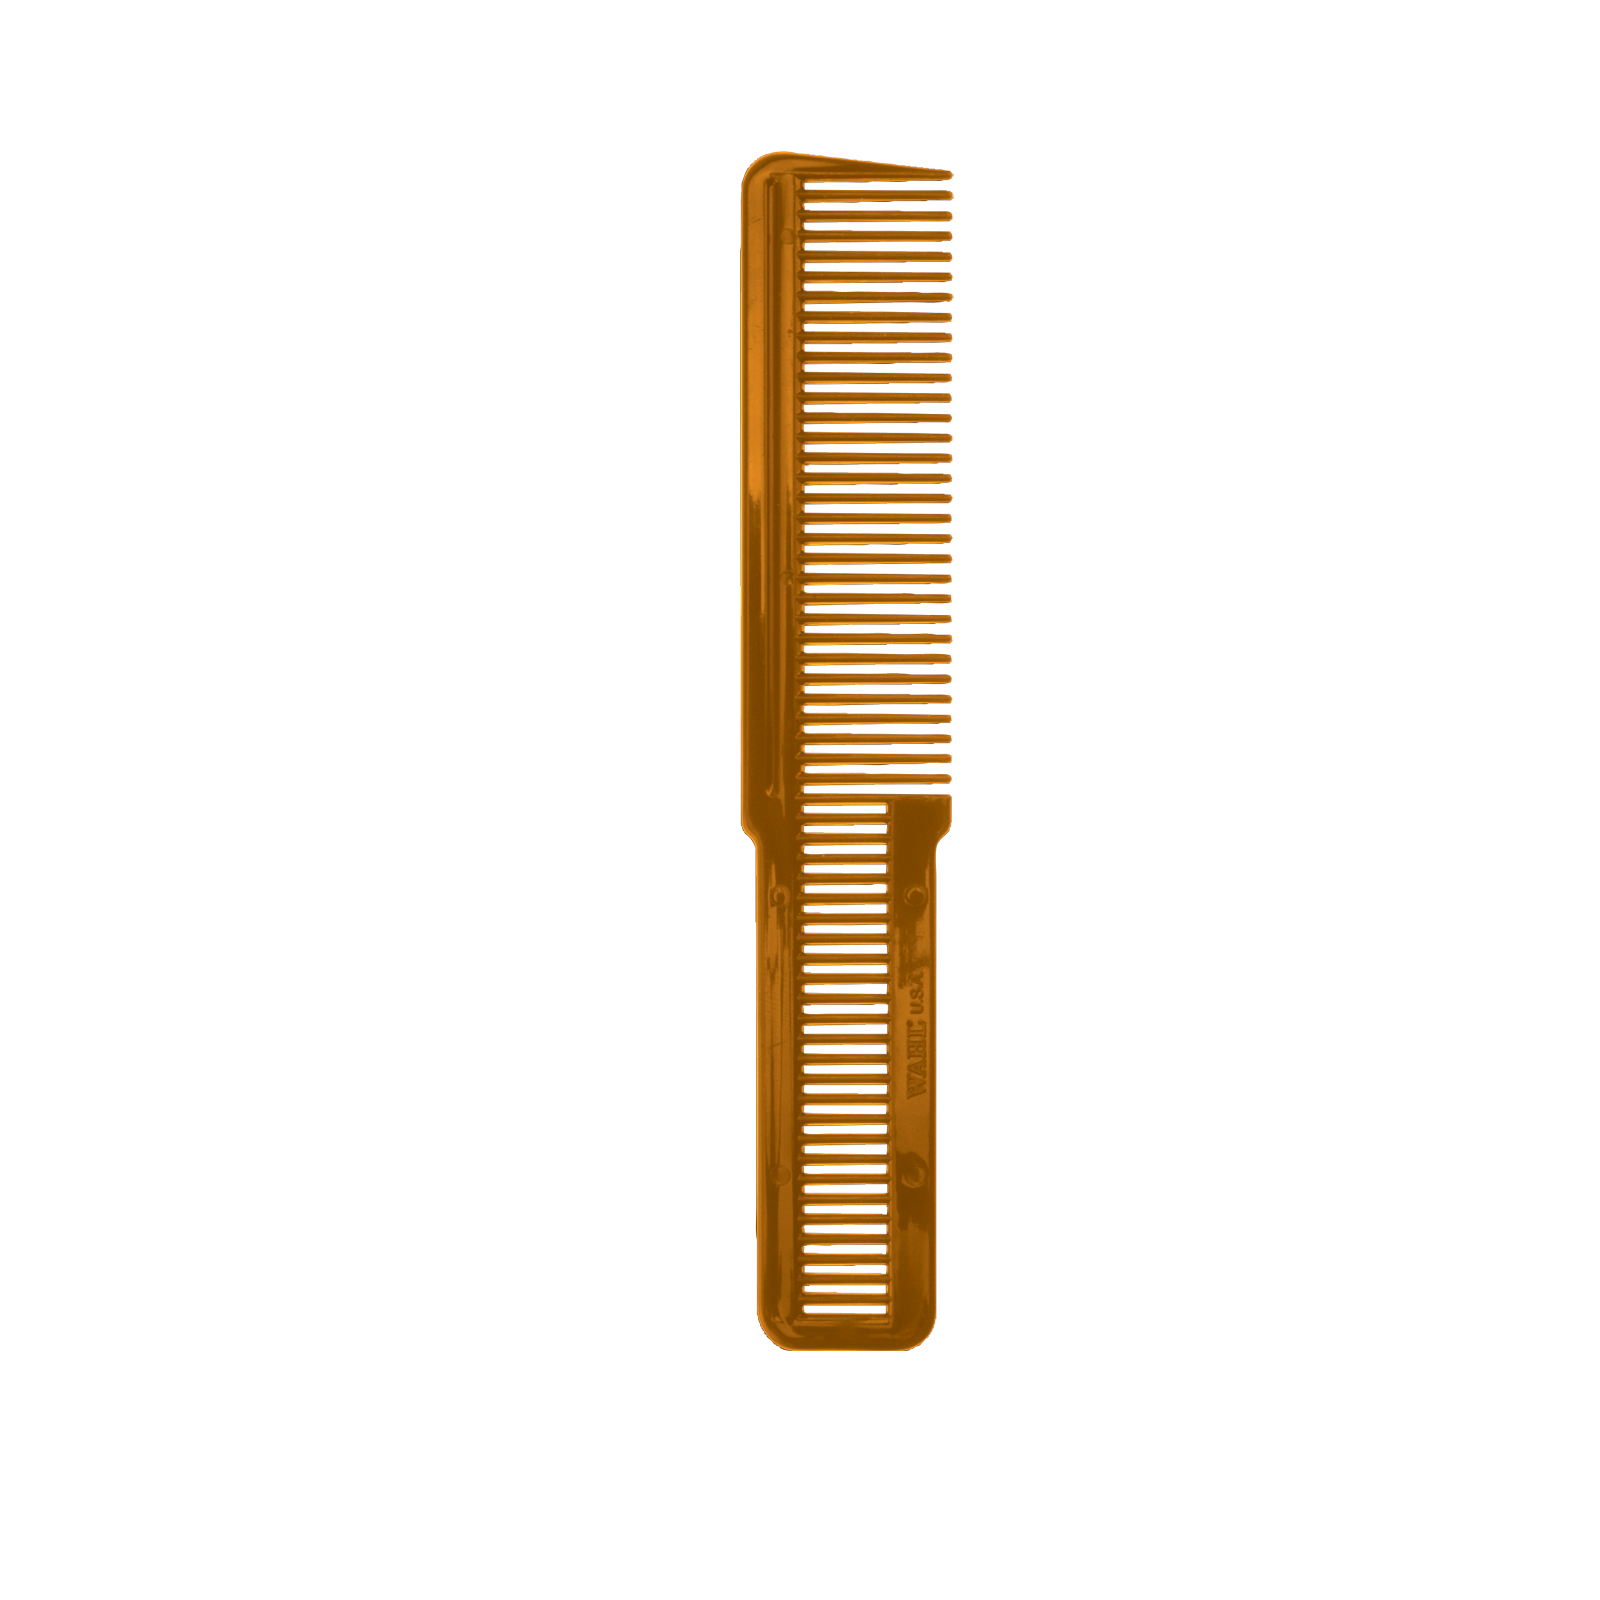 Clipper Comb Orange # 53195 Large